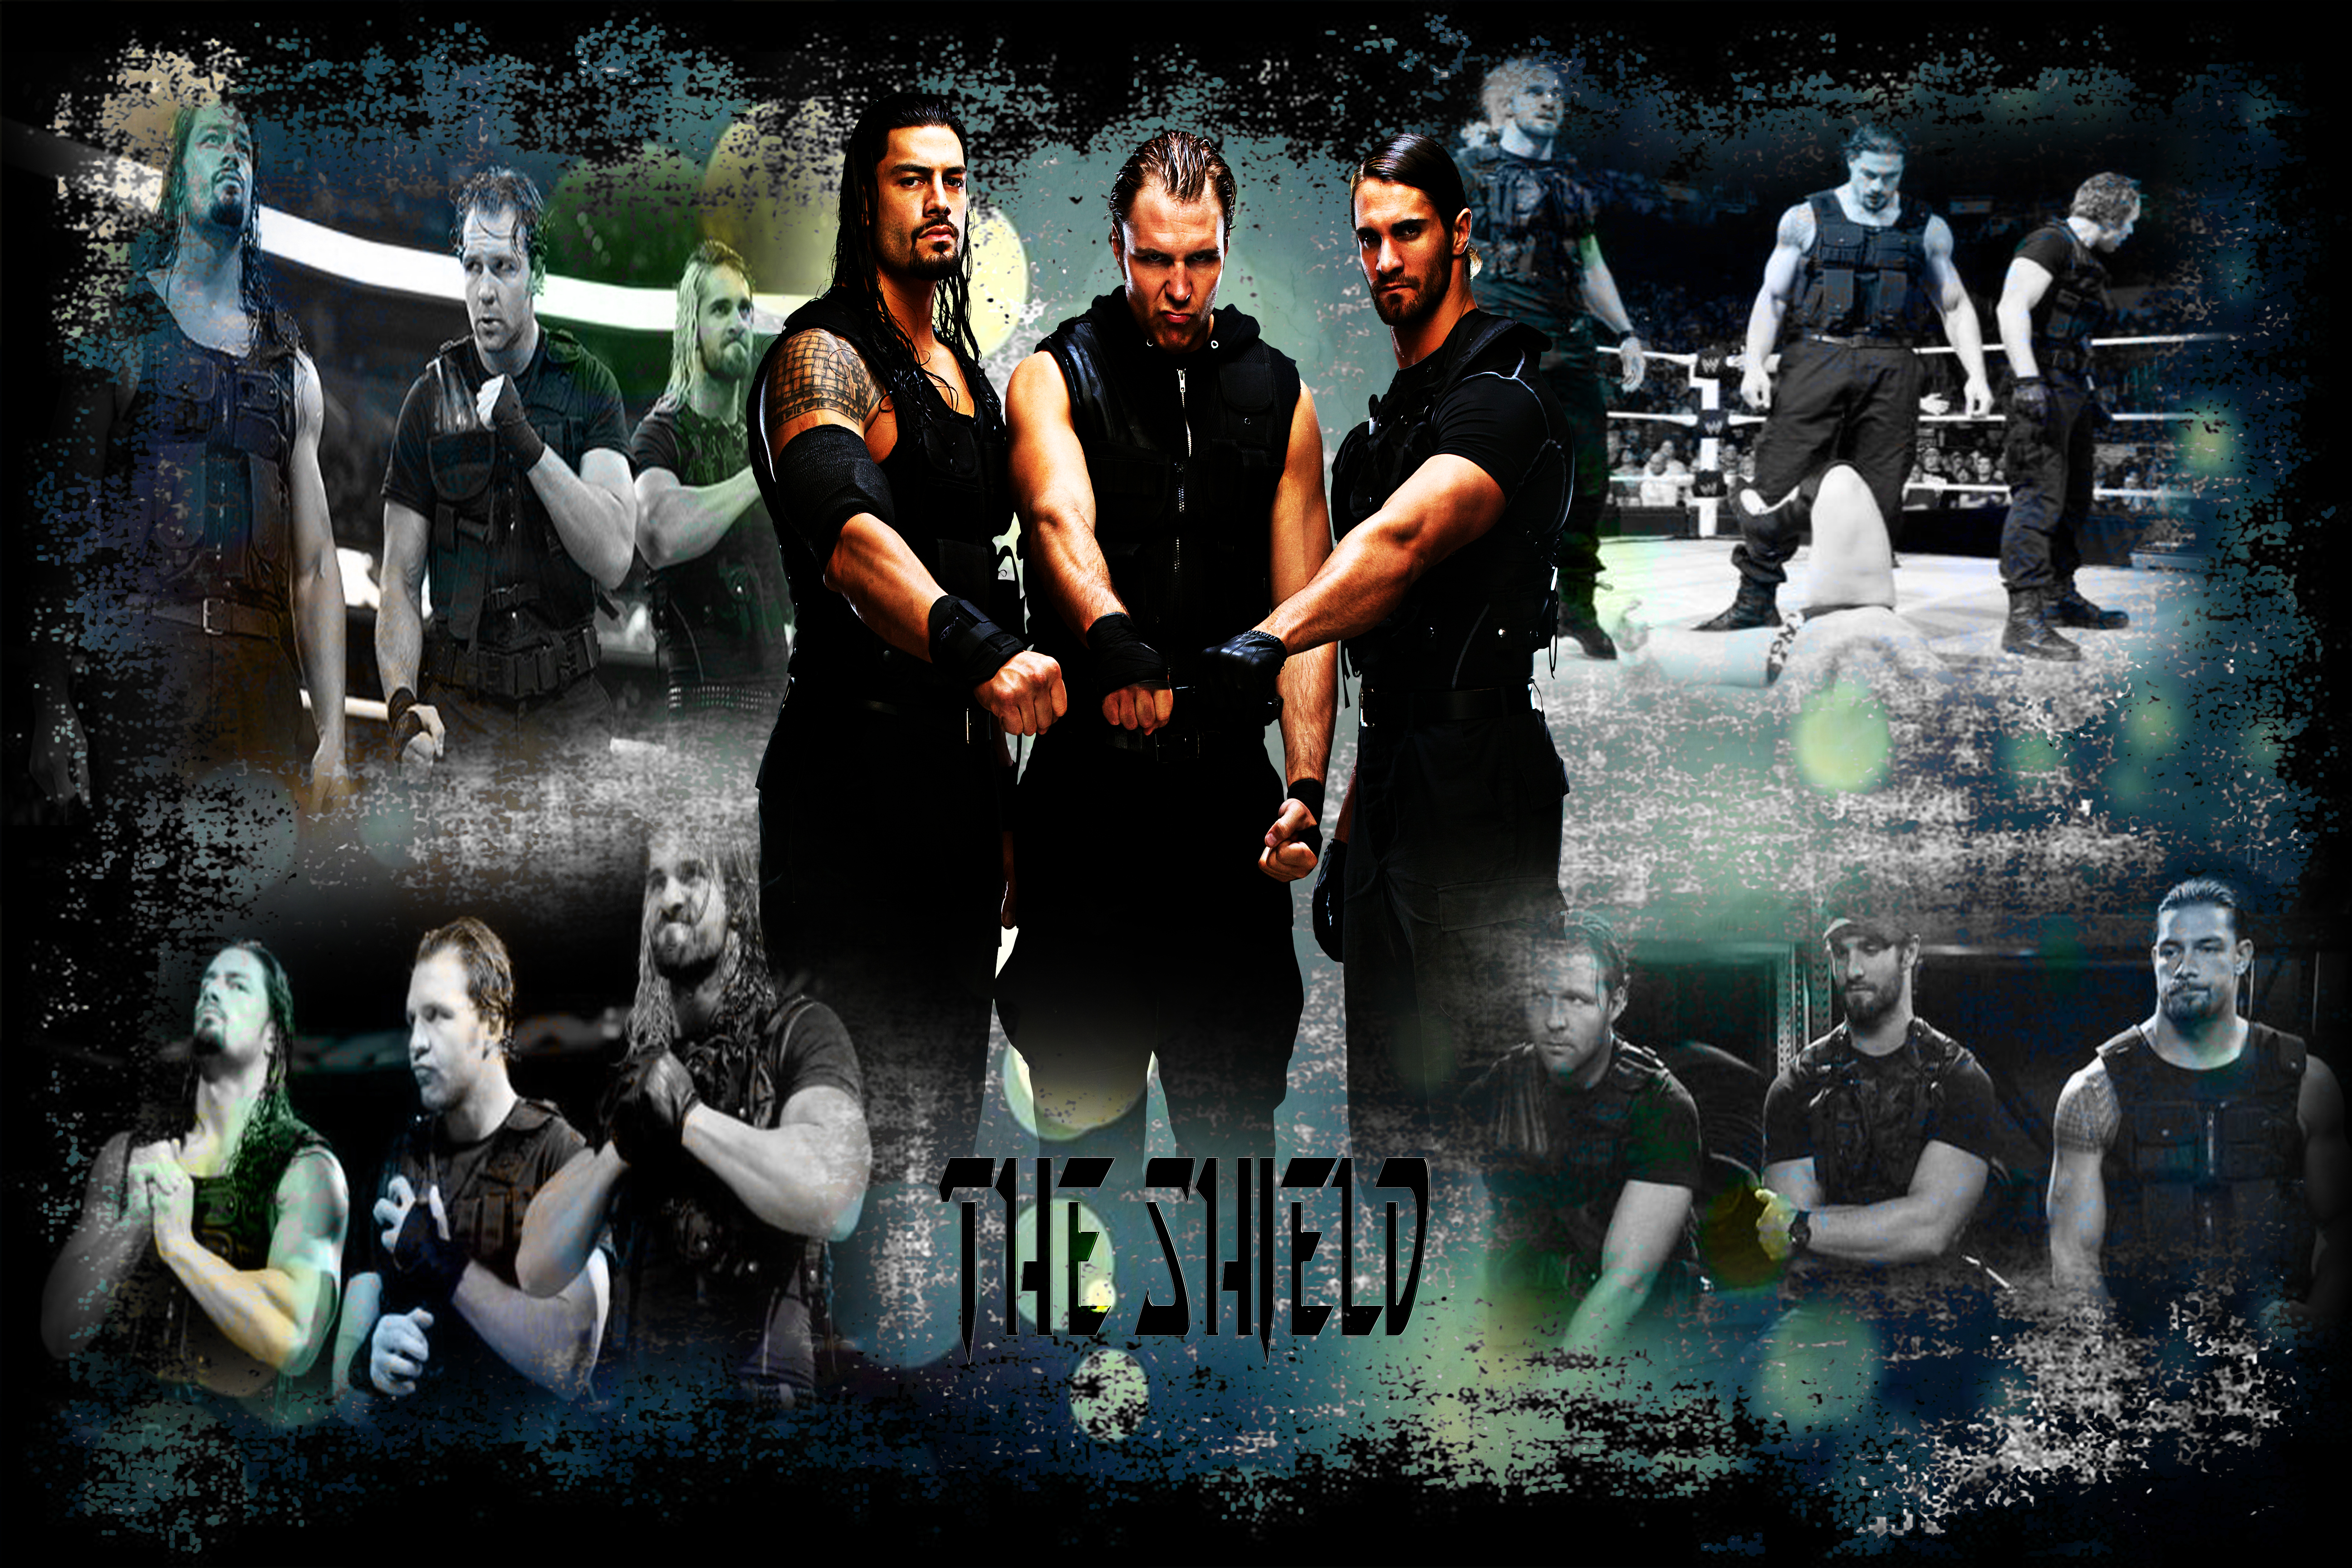 WWE '-'-The Shield'-'- - Wallpaper 2014 |Full HD| by JusttJaa on ...